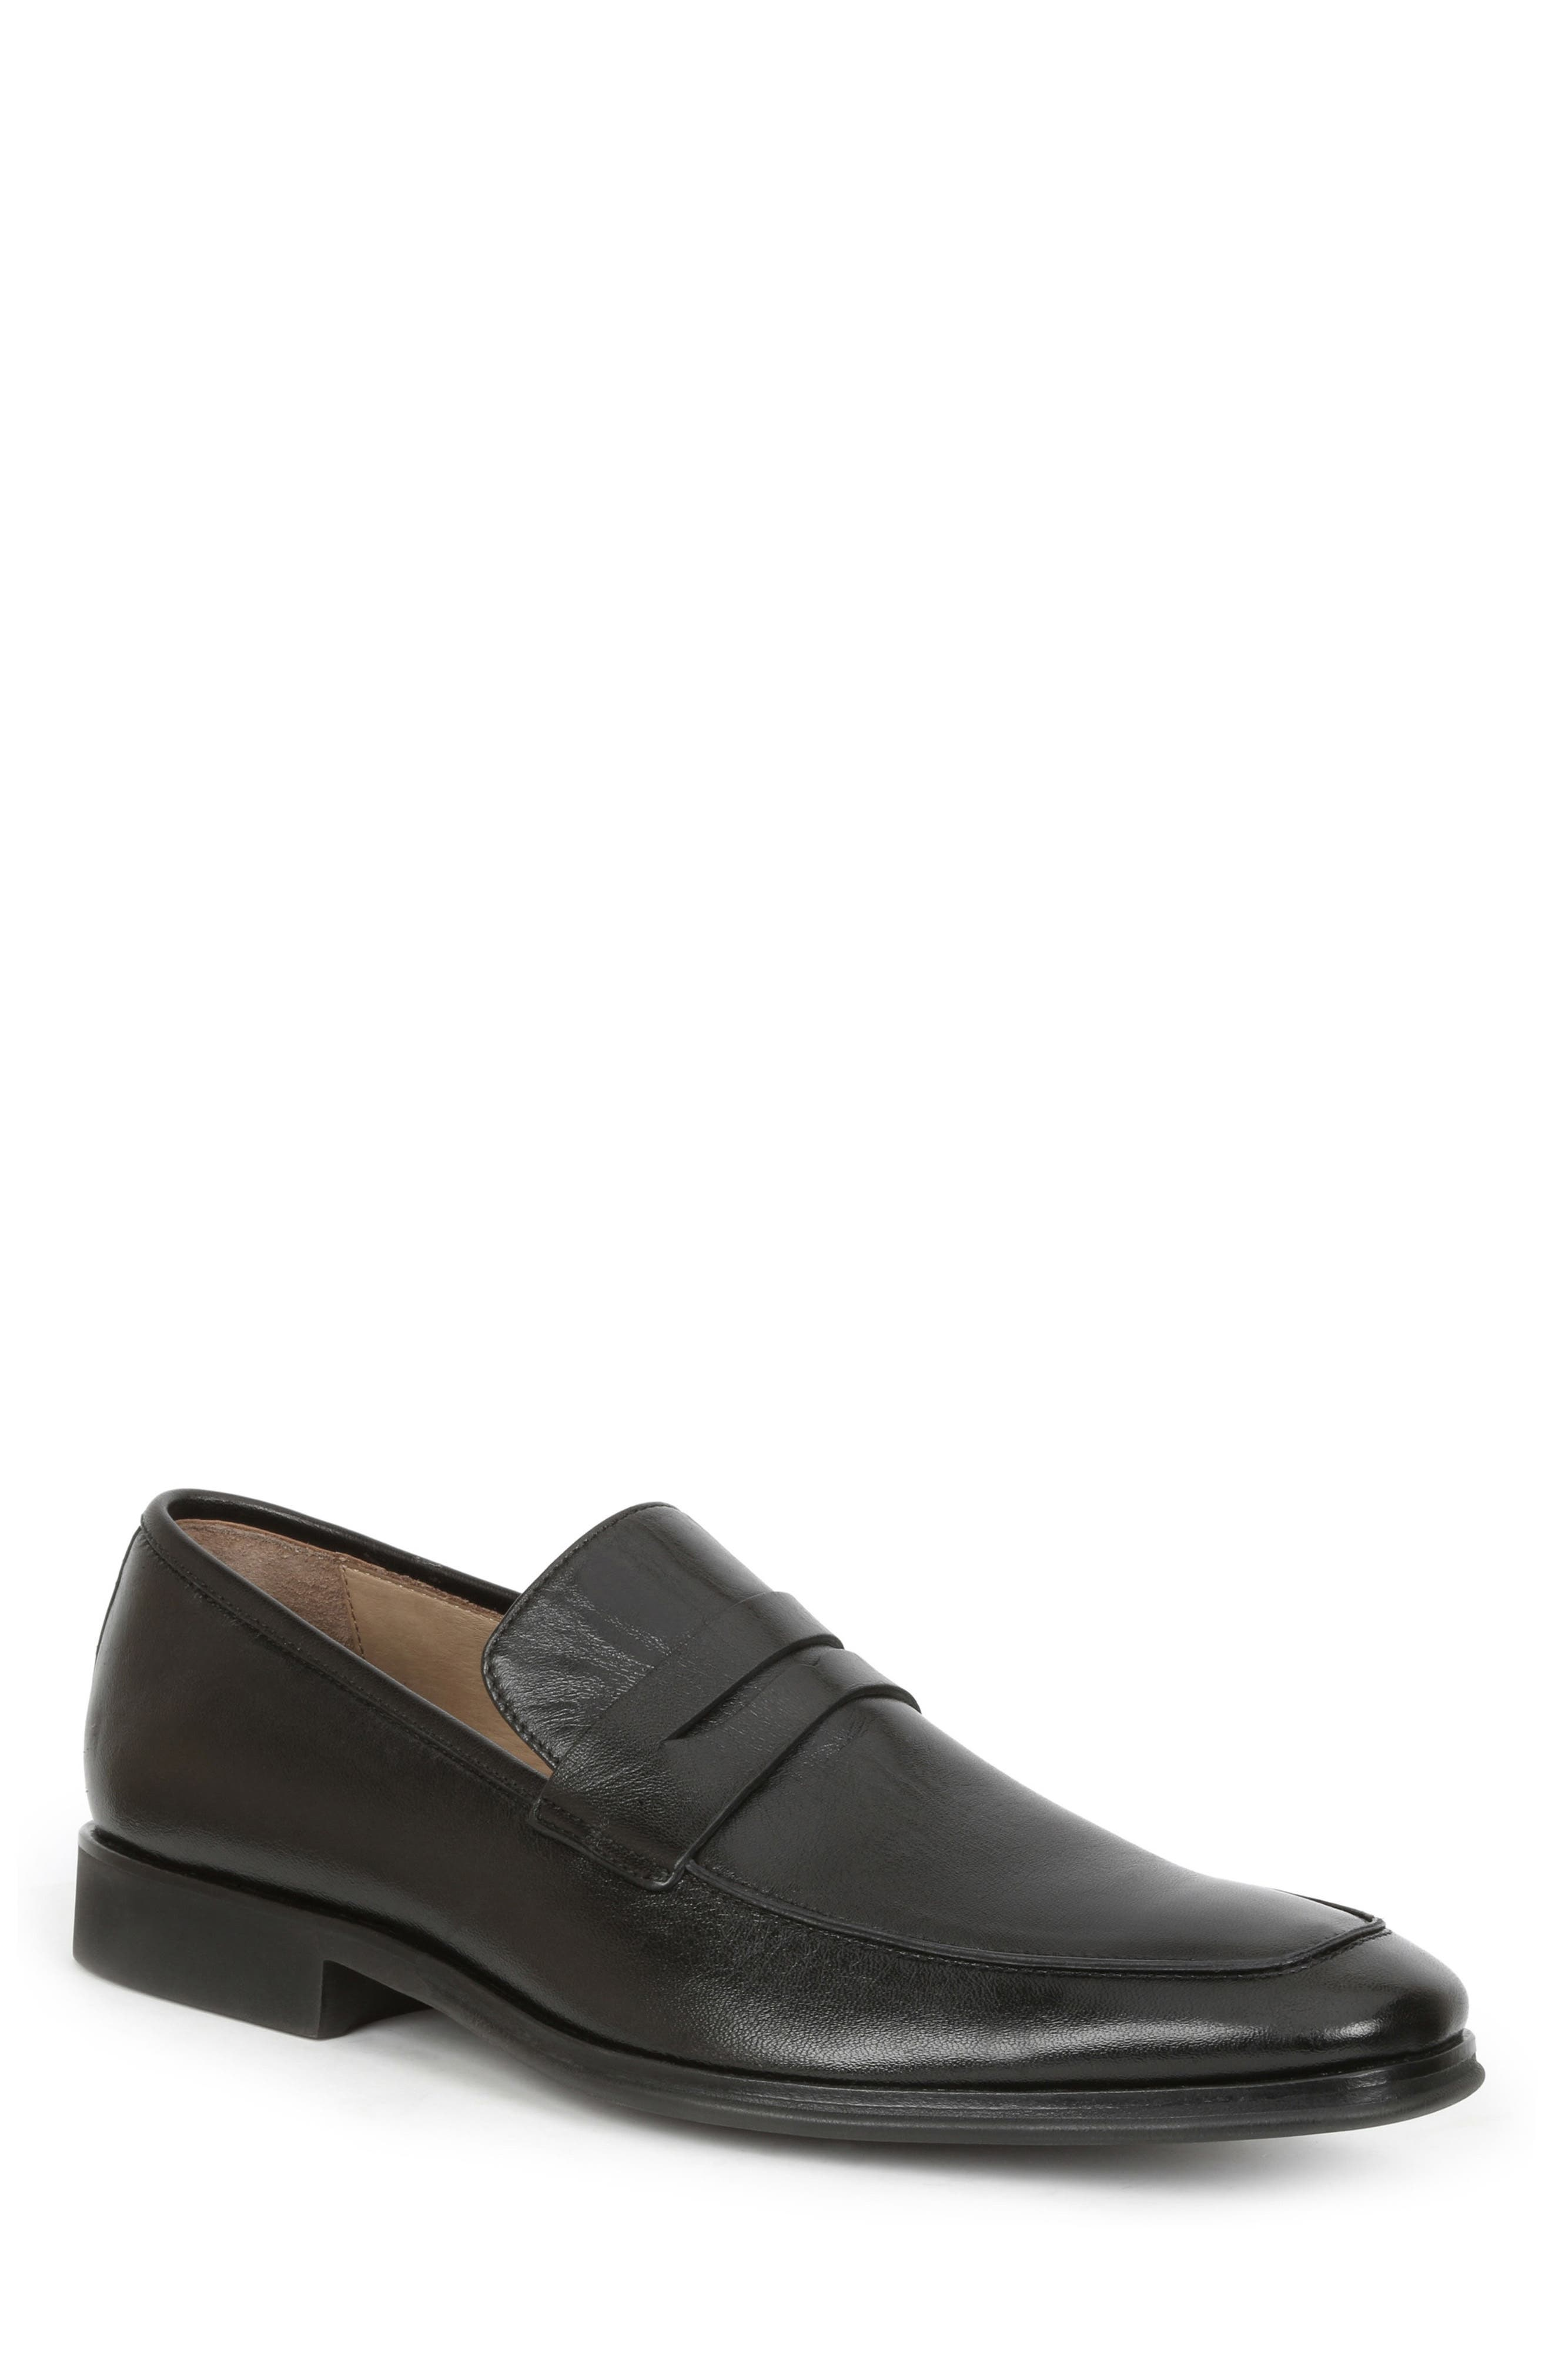 Ragusa Penny Loafer,                             Main thumbnail 1, color,                             Black Leather